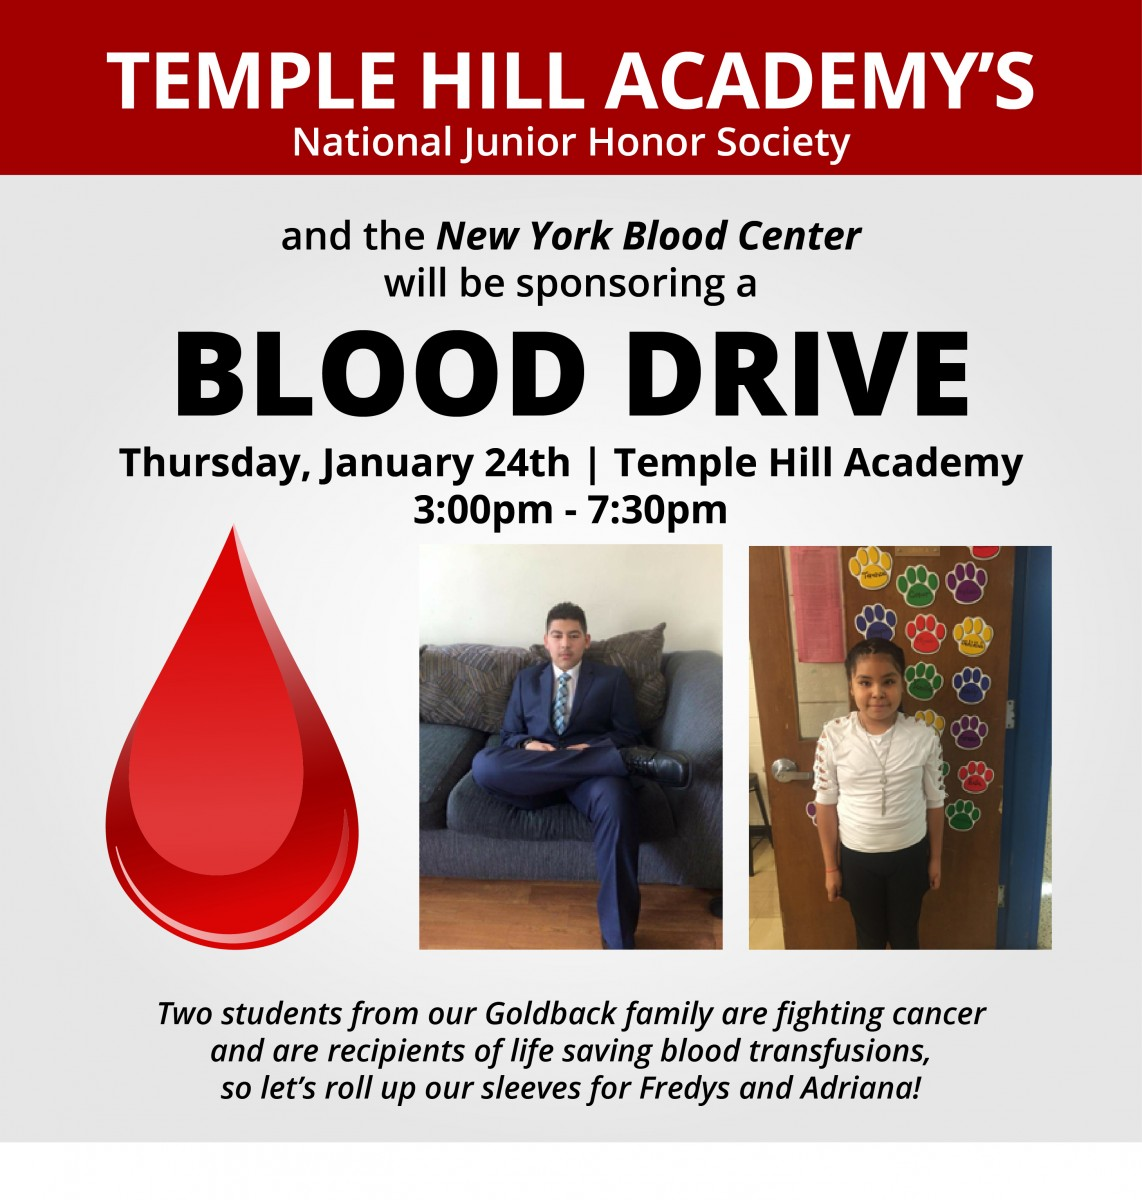 Thumbnail for Temple Hill Academy To Host Blood Drive on January 24th